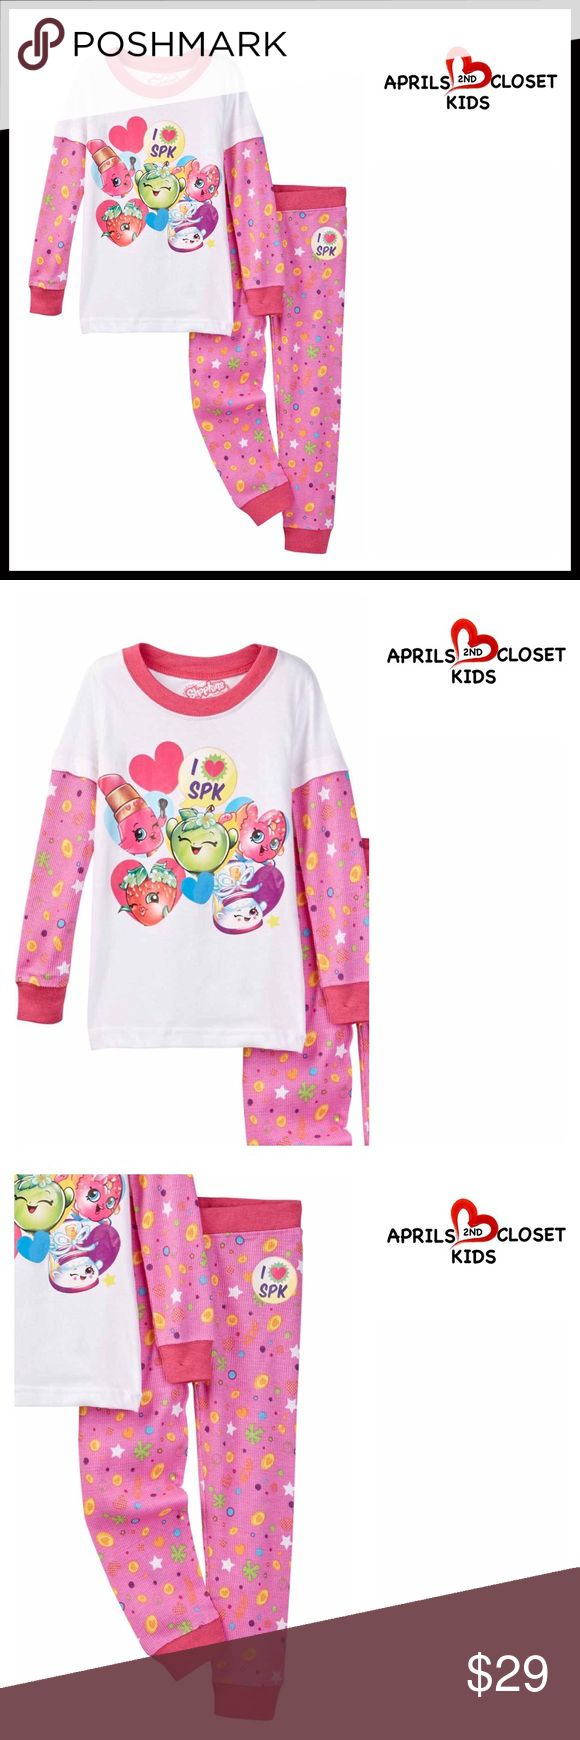 ⭐⭐ SHOPKINS Pajama Set 2-Piece 💟NEW WITH TAGS💟  SHOPKINS Pajama Set  * Super soft & comfy  * 2 piece set  * Ribbed trim  * Long two-fer waffle print sleeve top  * Front graphic print   * Elastic waist pants & jogger cuff   Material: 100% cotton Color: Heart pink  Item# Search words #   🚫No Trades🚫 ✅ Offers Considered*✅ *Please use the blue 'offer' button to submit an offer. Shopkins Pajamas Pajama Sets